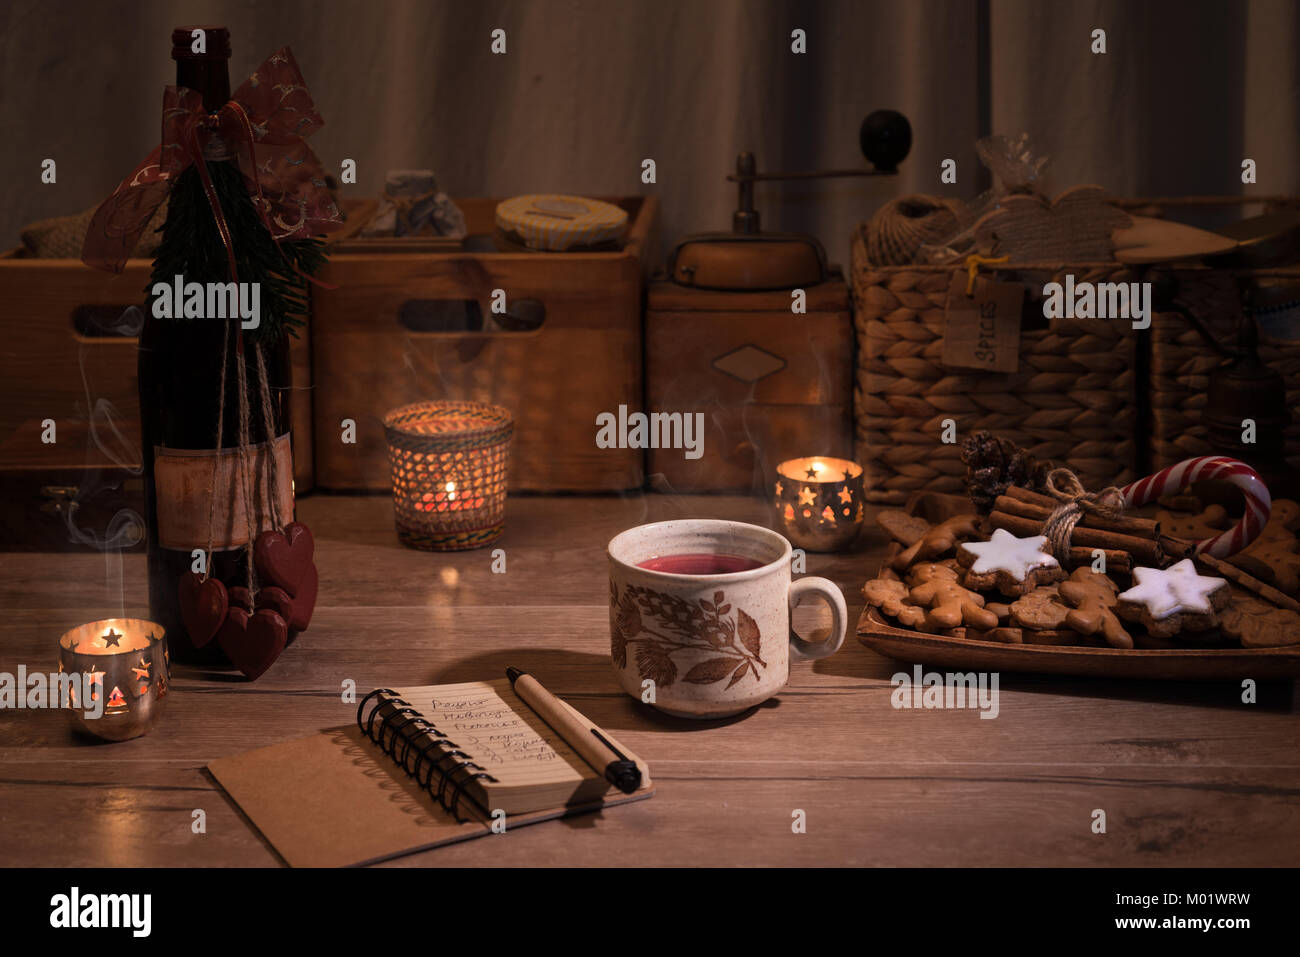 Christmas kitchen with mulled wine and cookies on the table - Stock Image